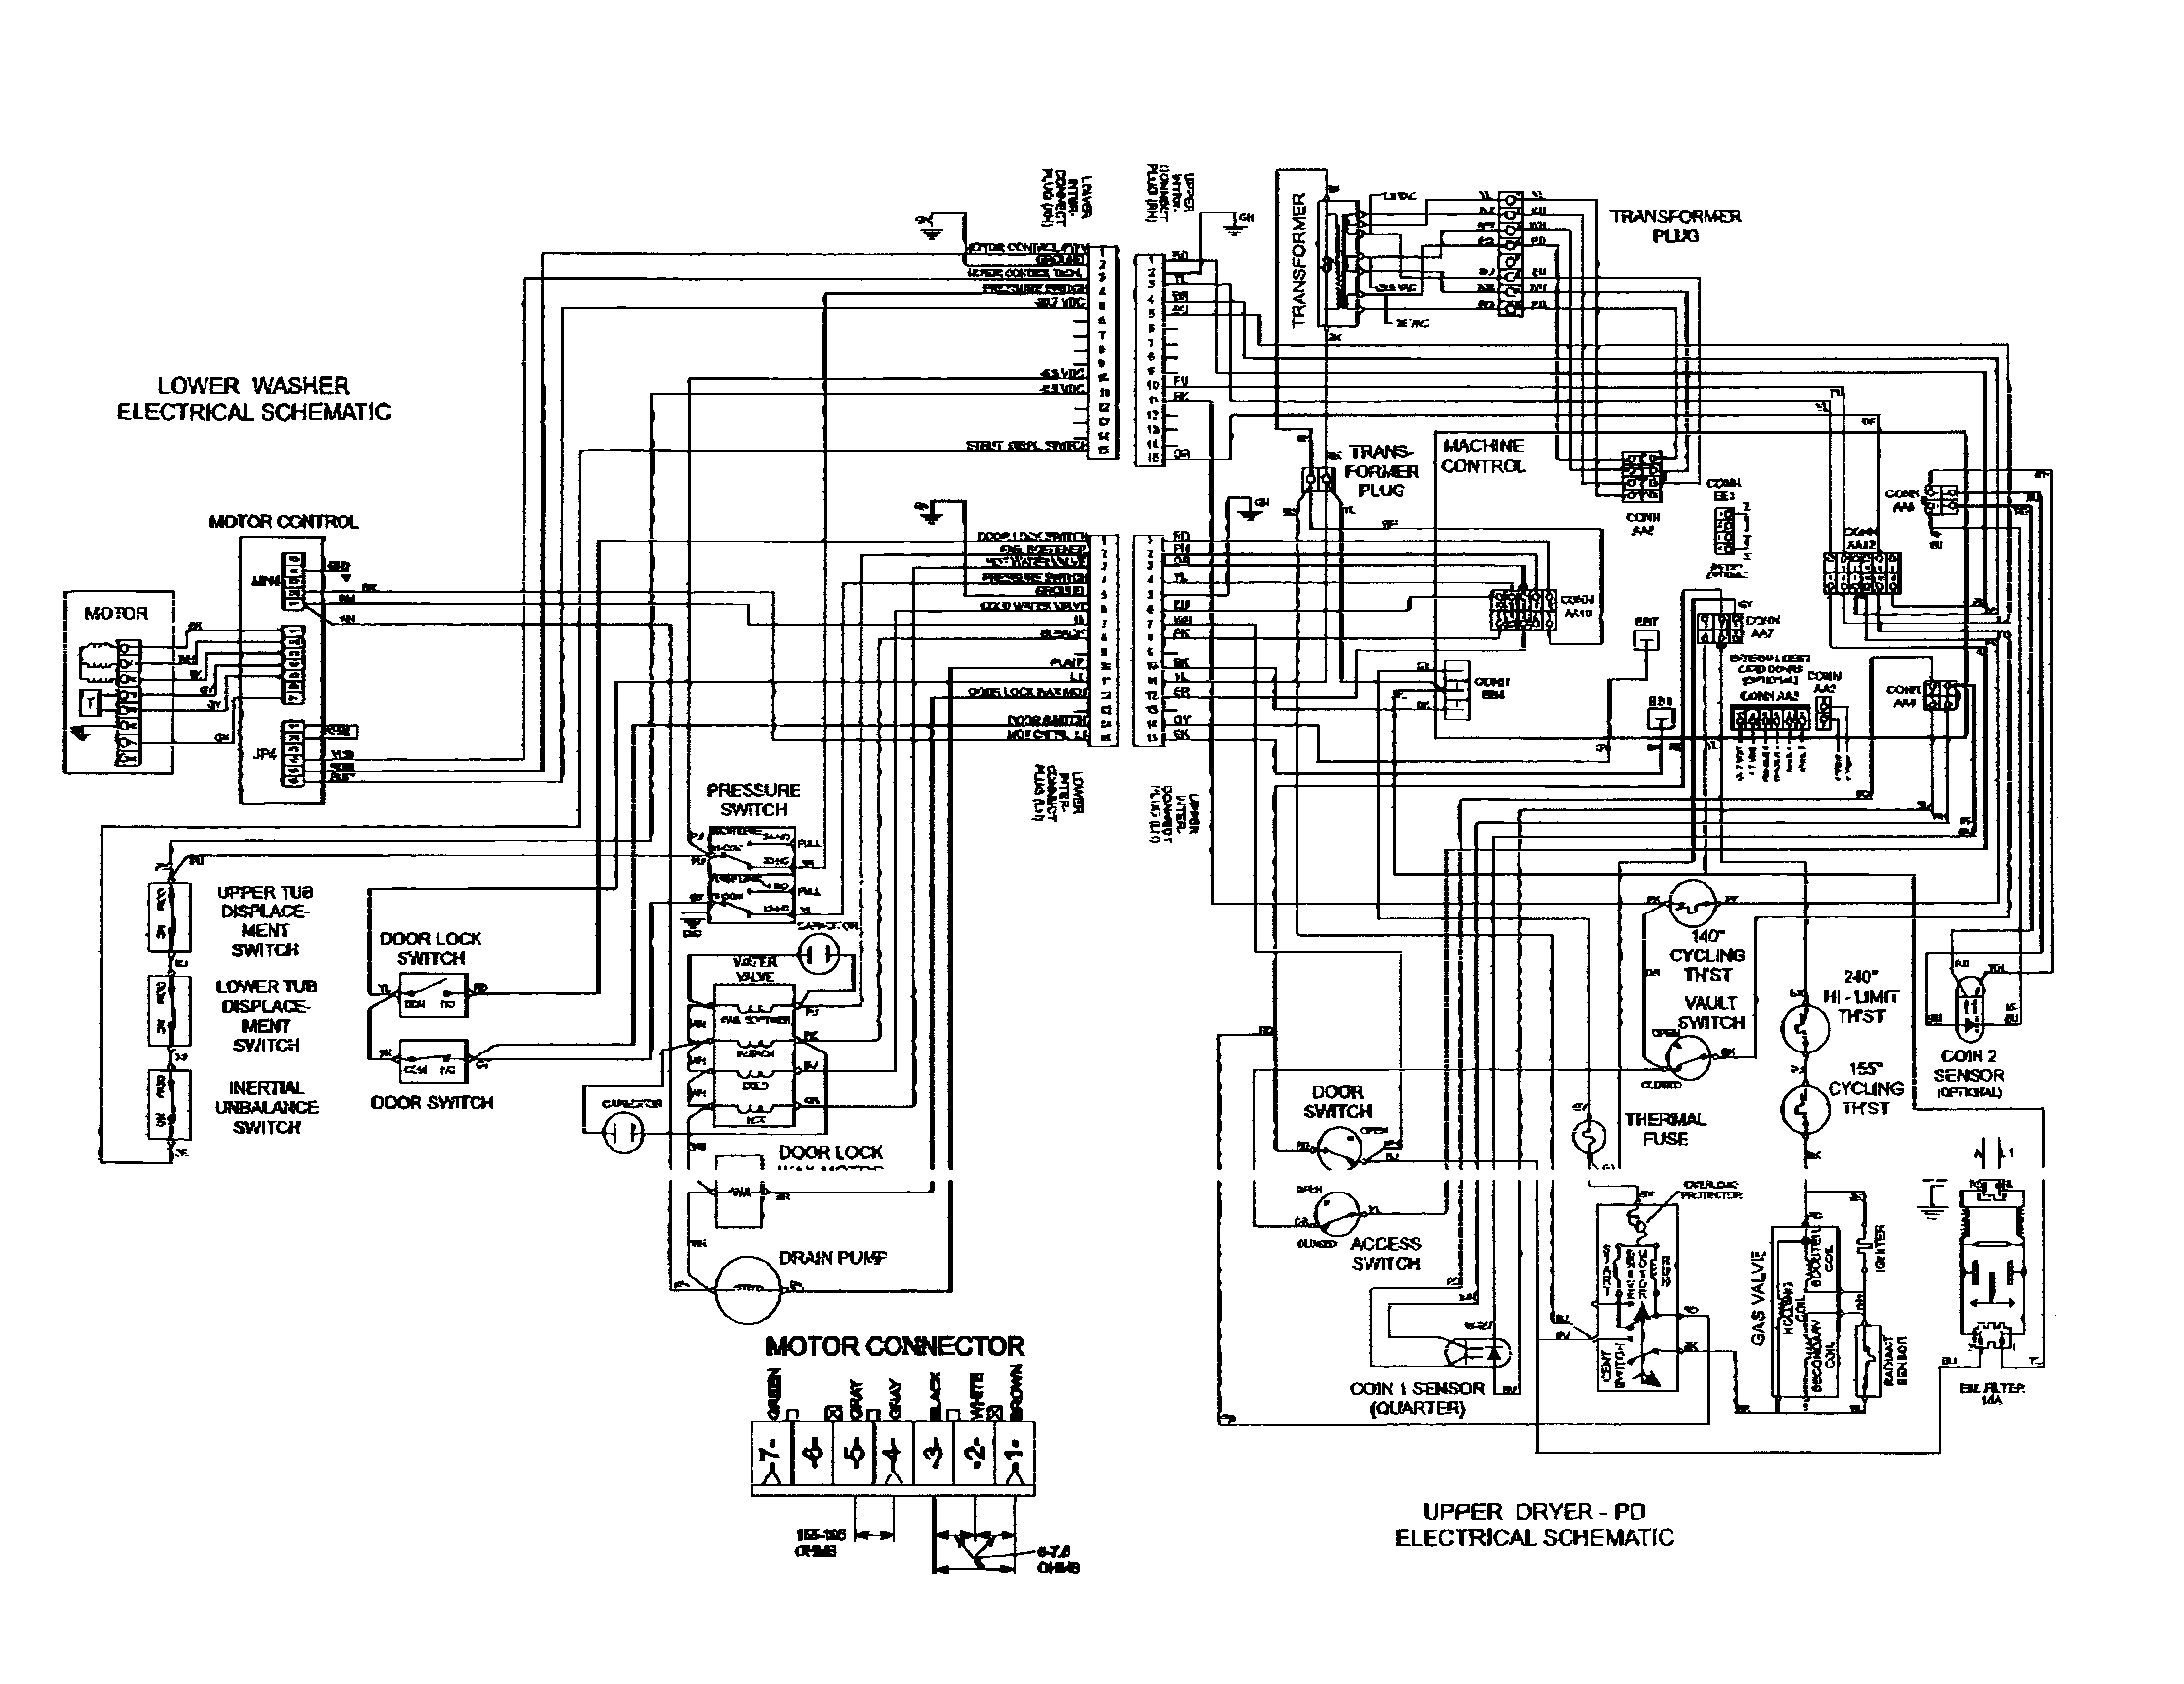 WIRING DIAGRAM Diagram & Parts List for Model MLG19PDDWW